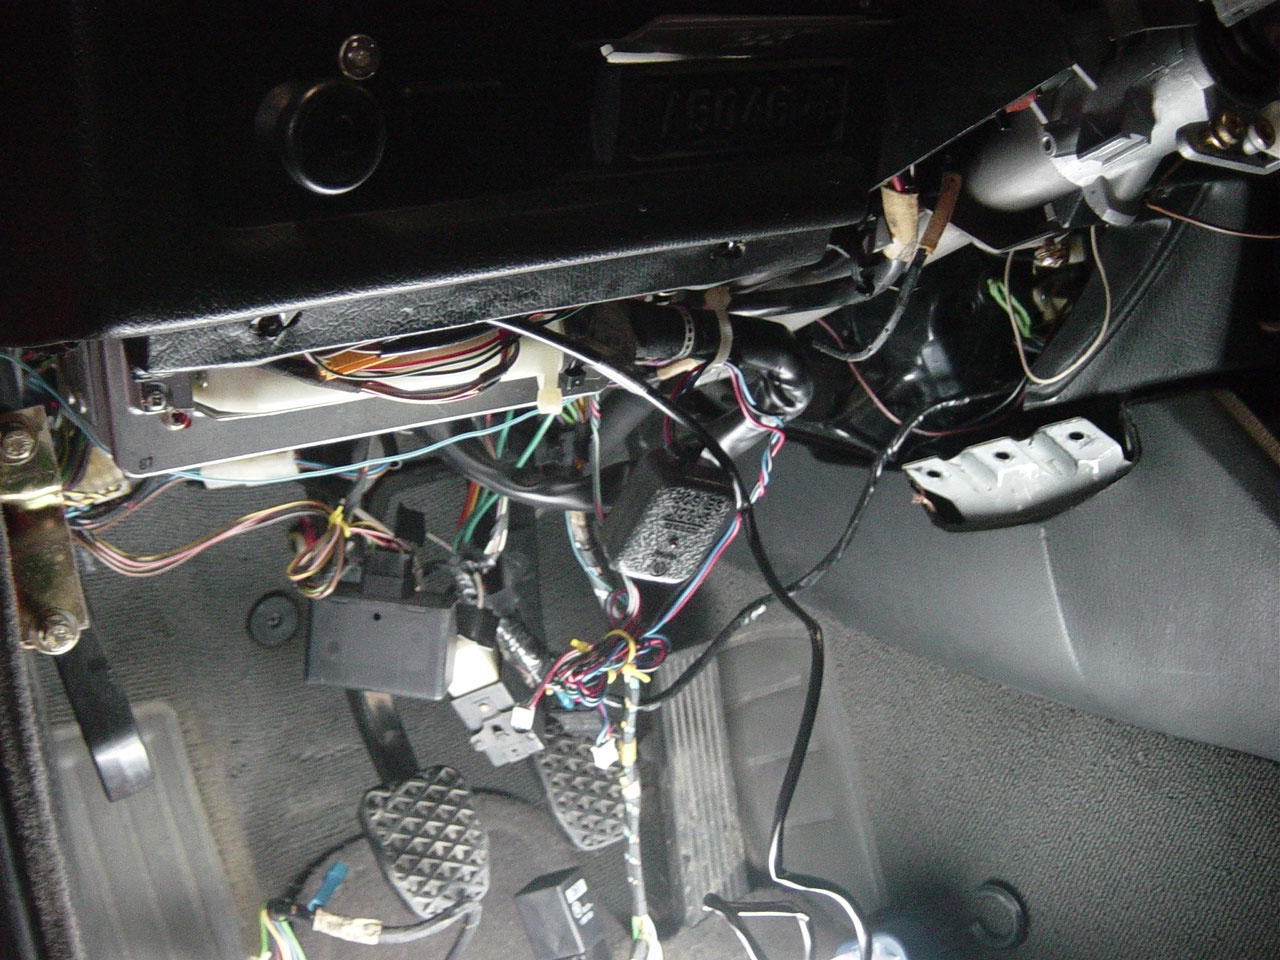 1991 Bmw 318i E30 M42 On Board Computer Obc Retrofit By Michael Wiring Diagram Enjoy The Mess Under Car